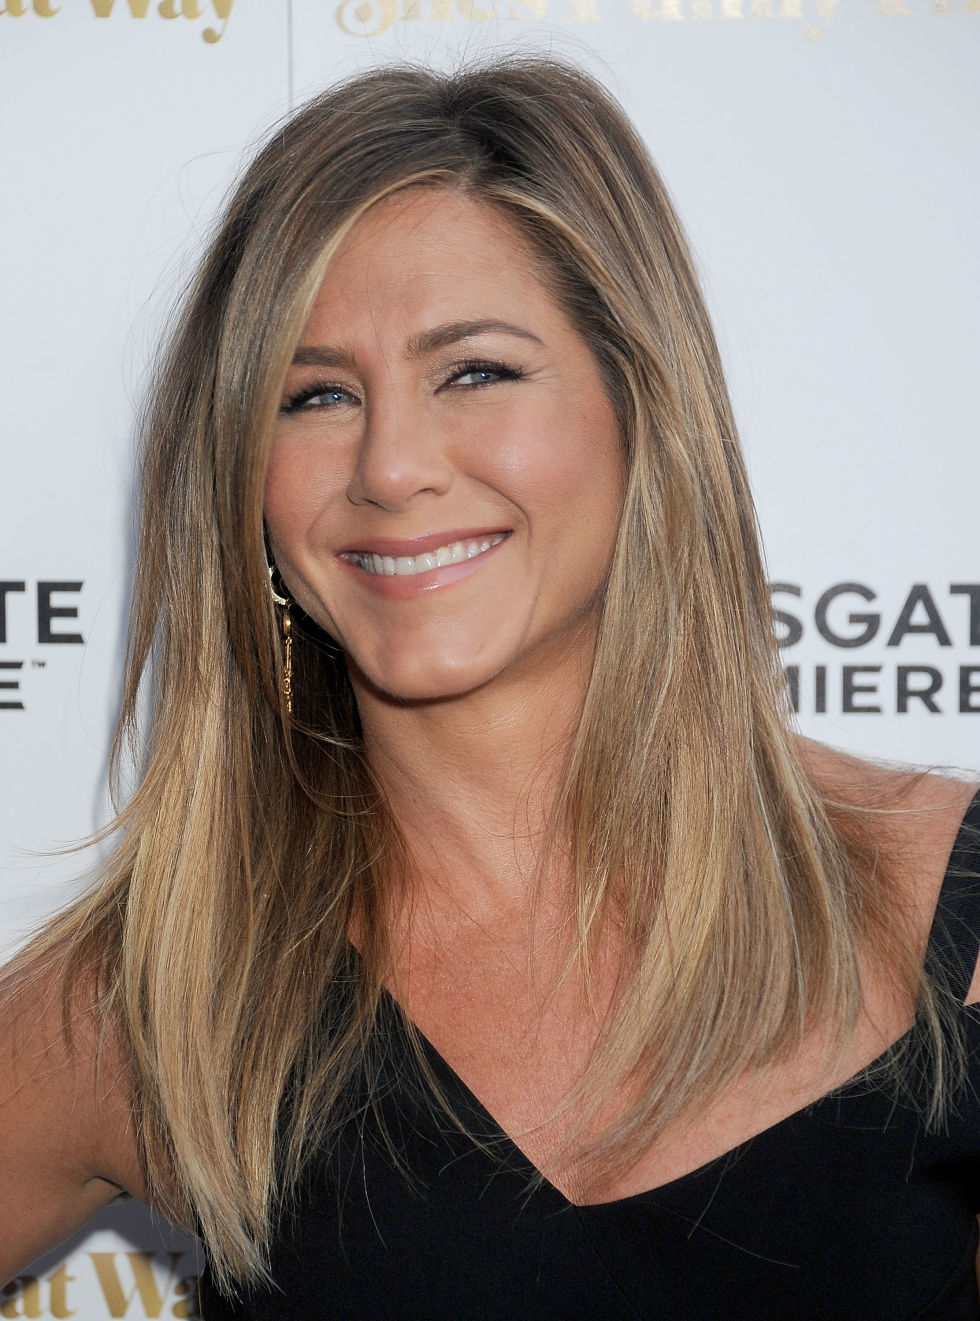 Jennifer Aniston ash blonde hair colors for fall winter